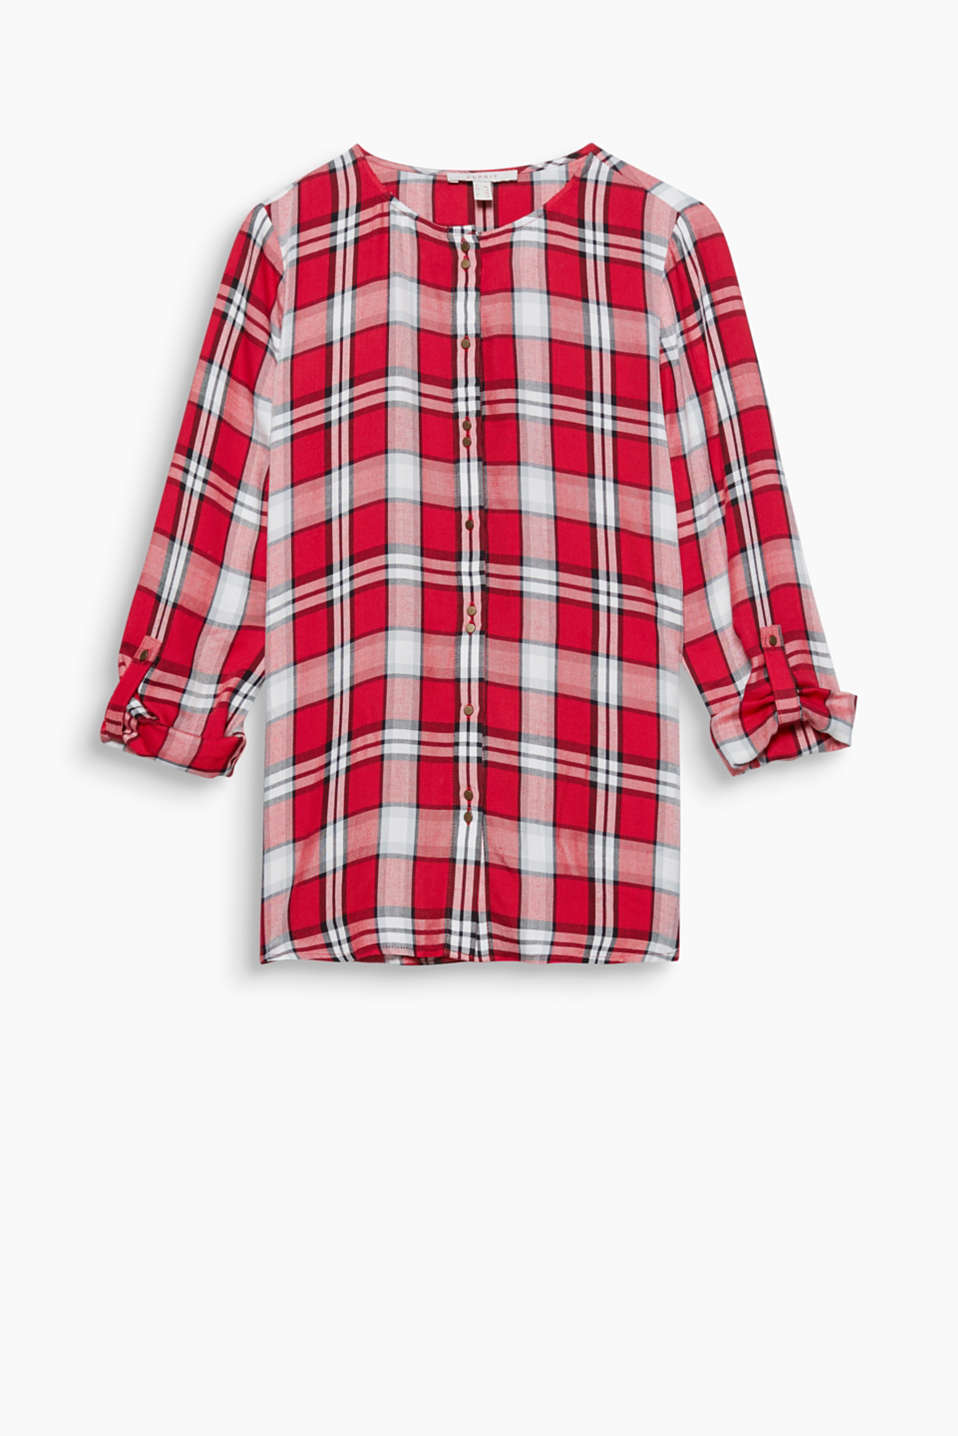 This flowing check blouse with a round neckline and turn-up sleeves is always perfect with jeans and stretch trousers